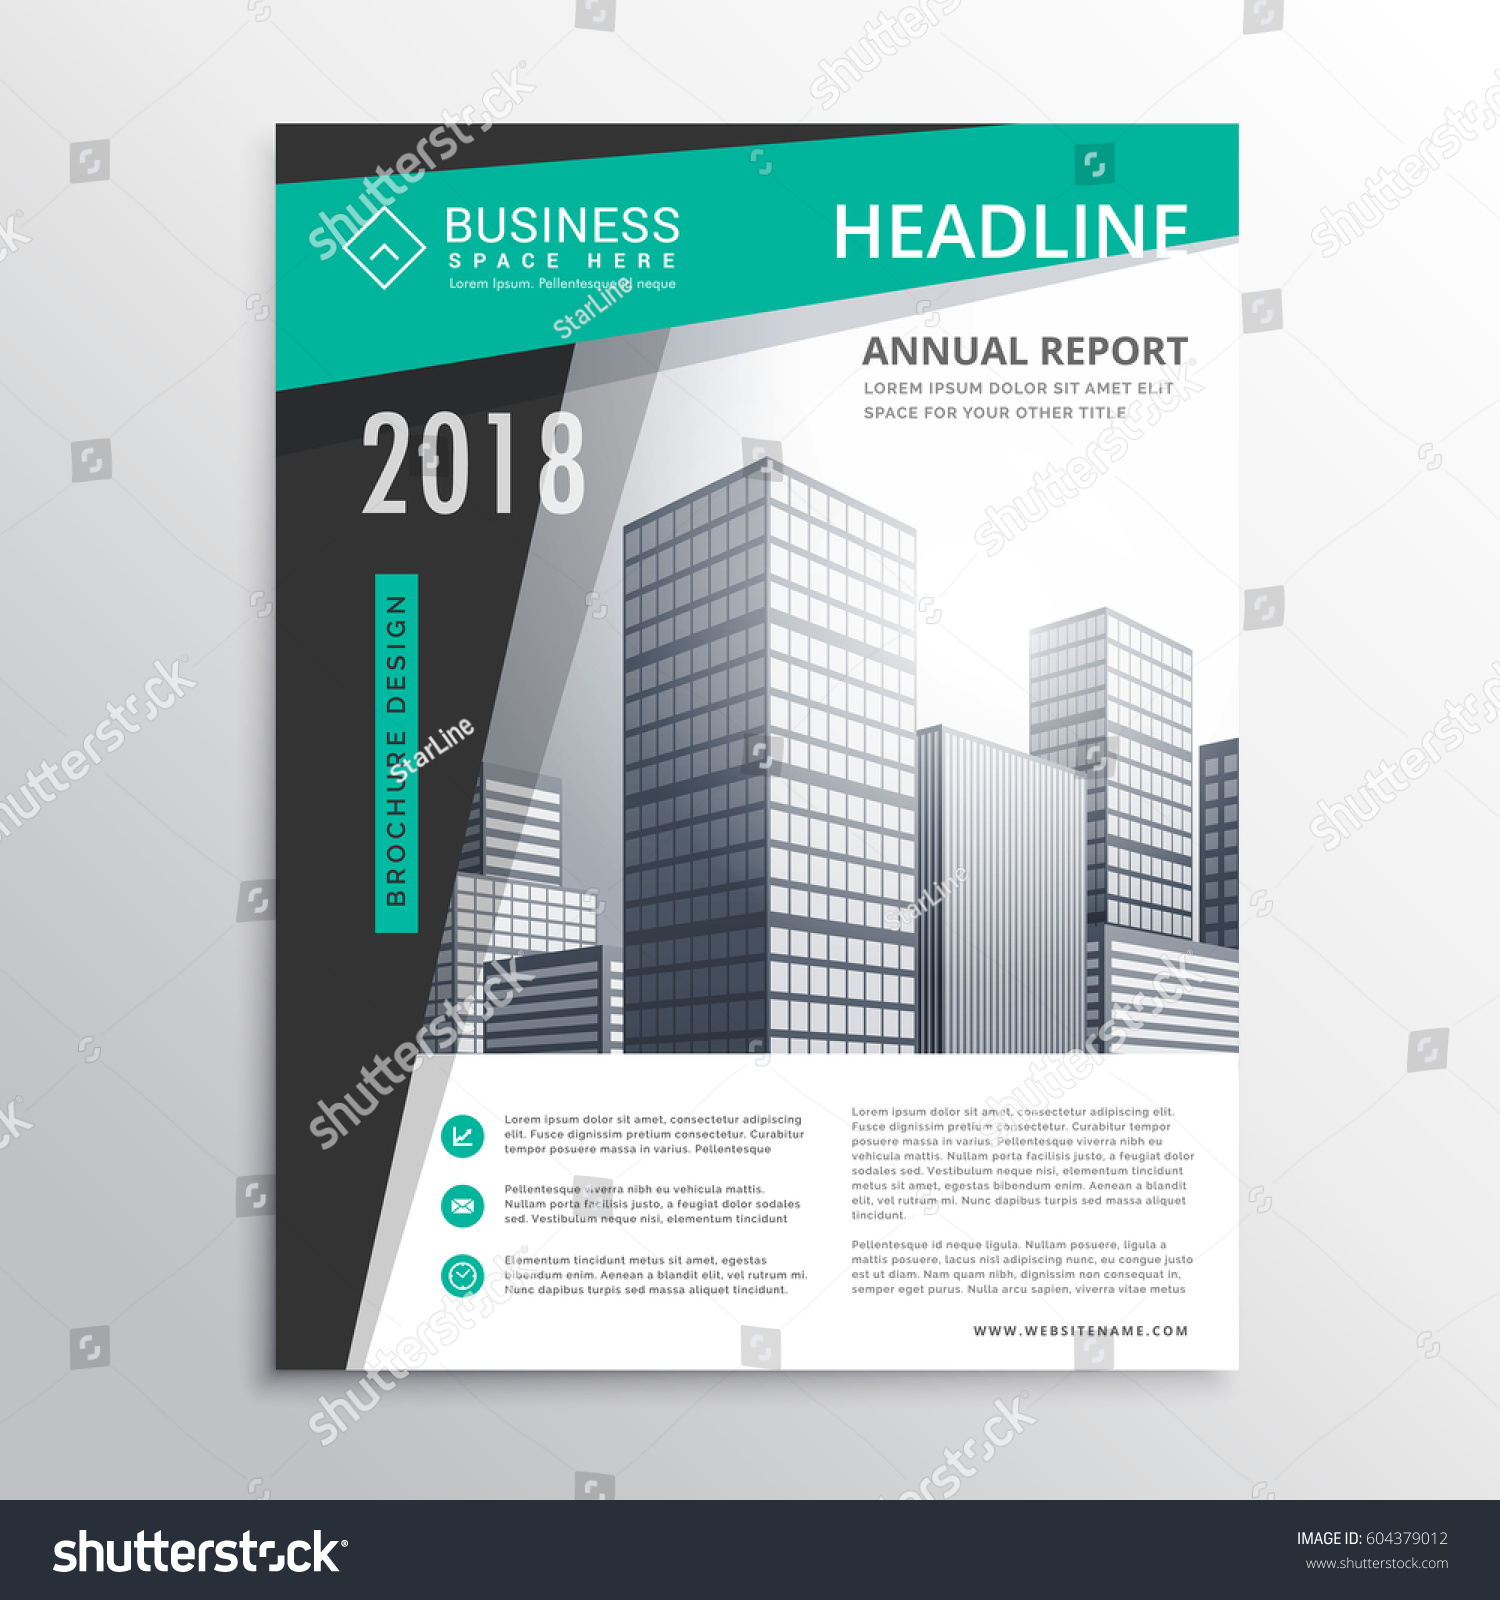 Awesome business brochure flyer design template stock for Awesome brochure templates